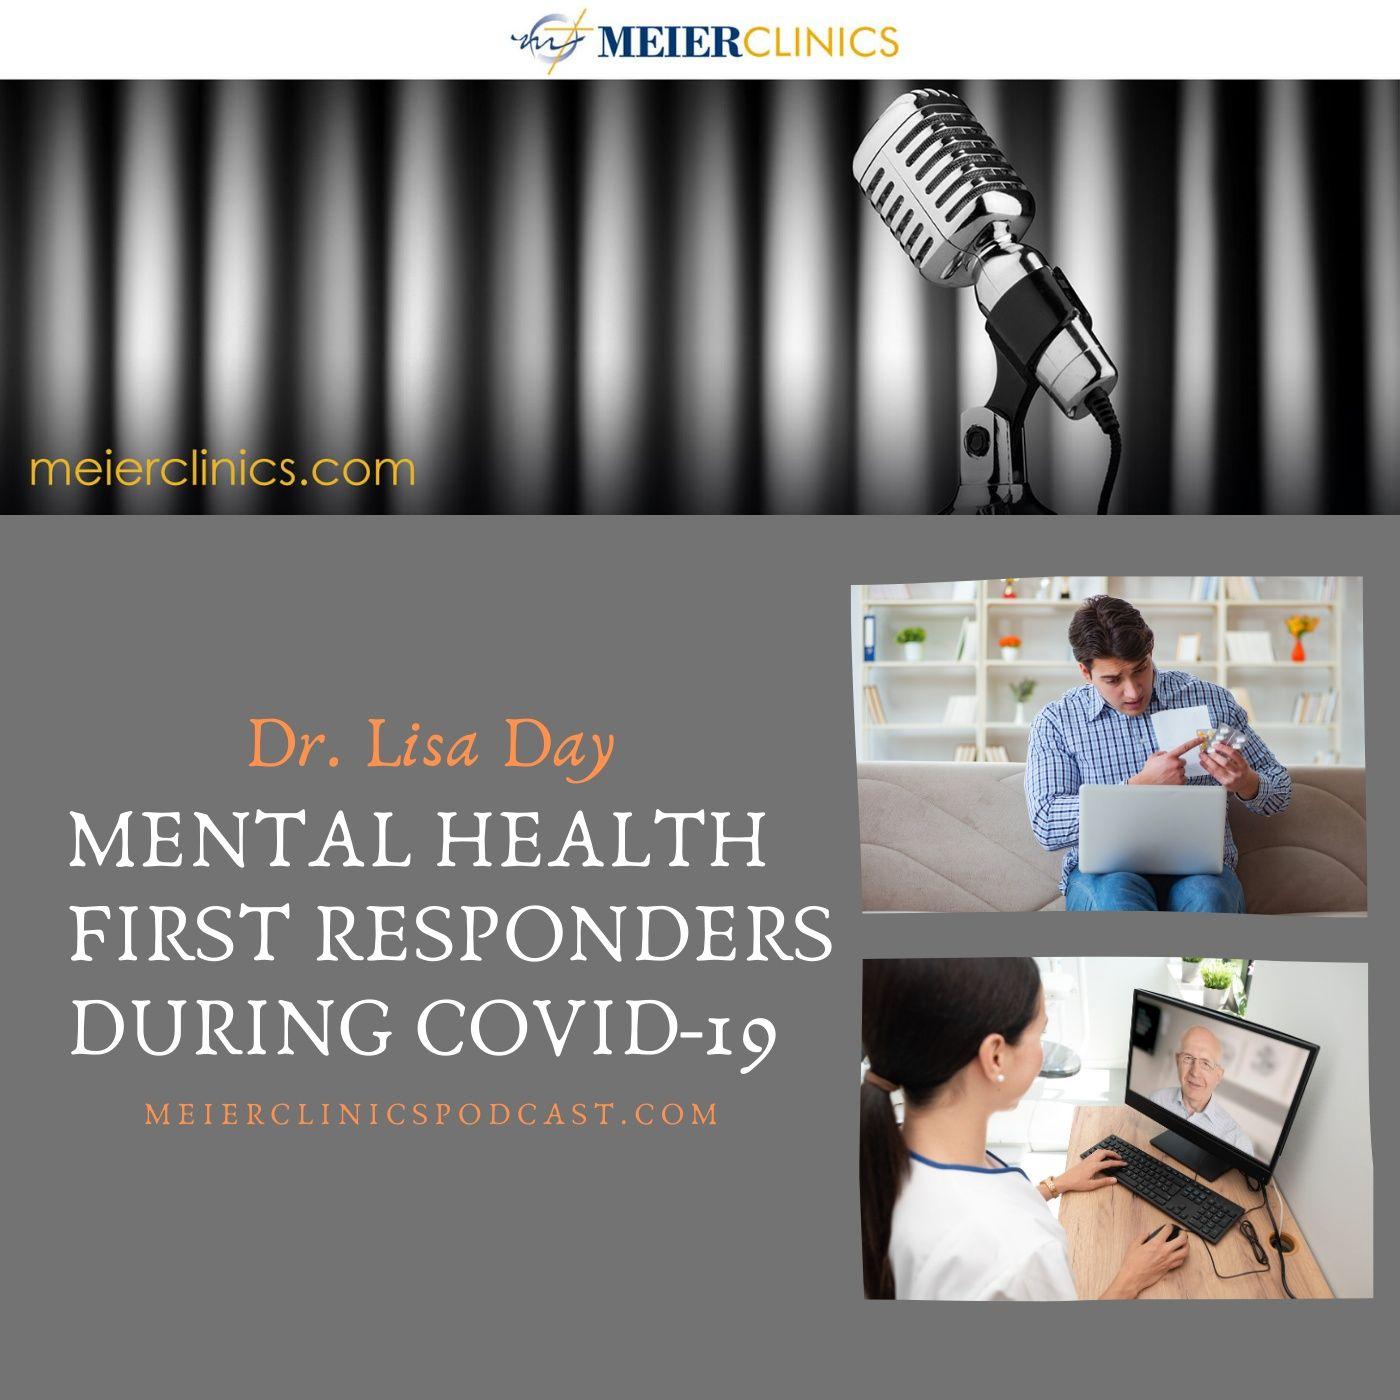 Mental Health First Responders During Covid-19